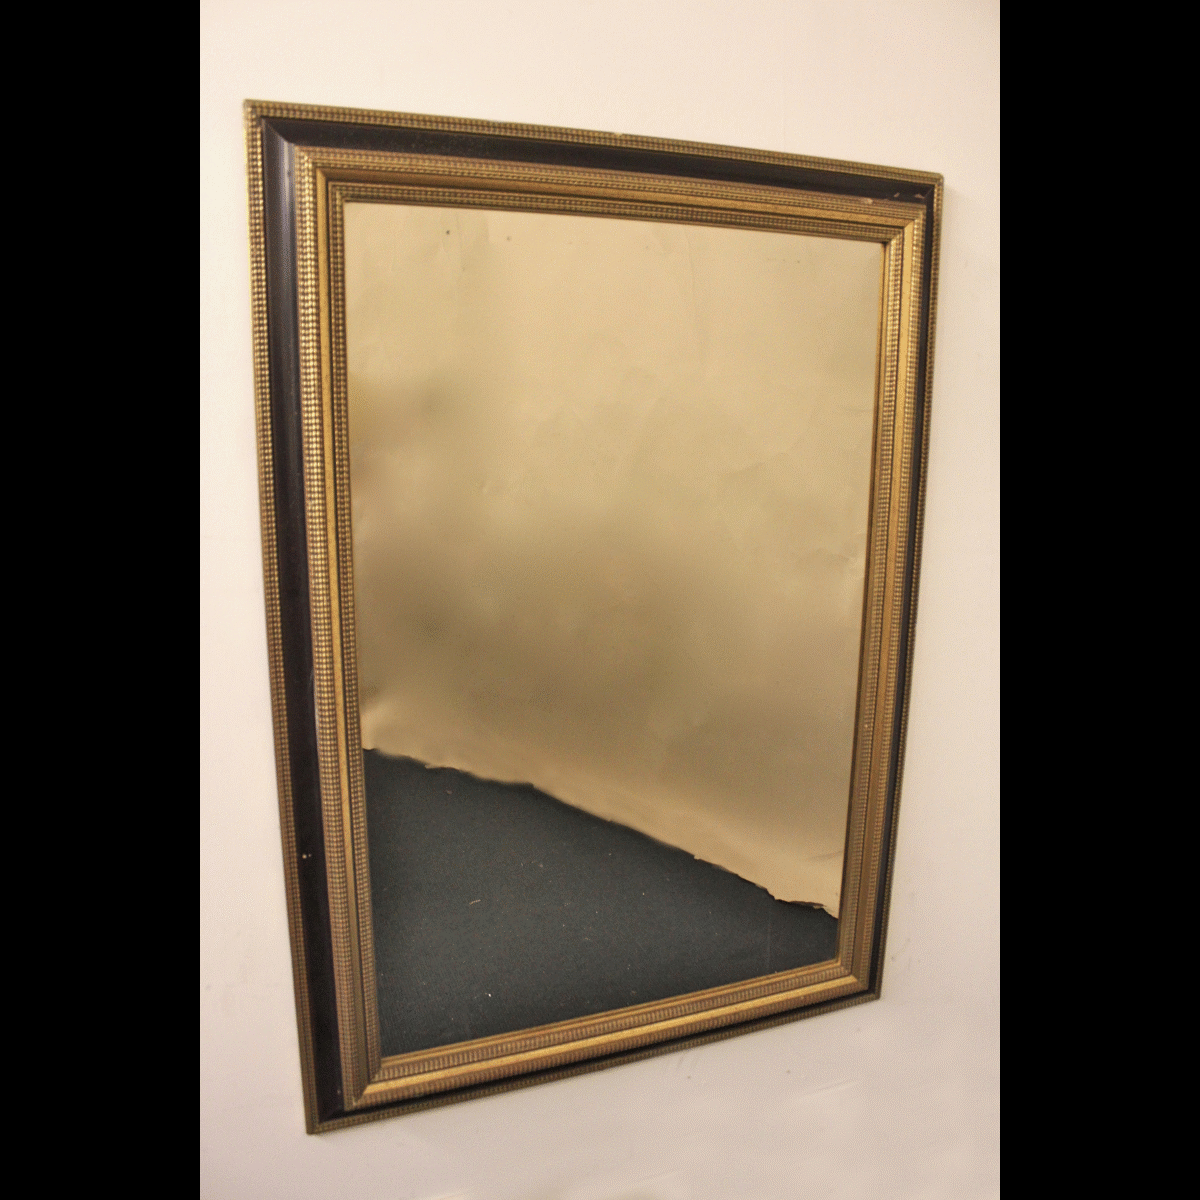 0070054 mirror x1 107cm long by 77cm wide stockyard north for Long wide mirror